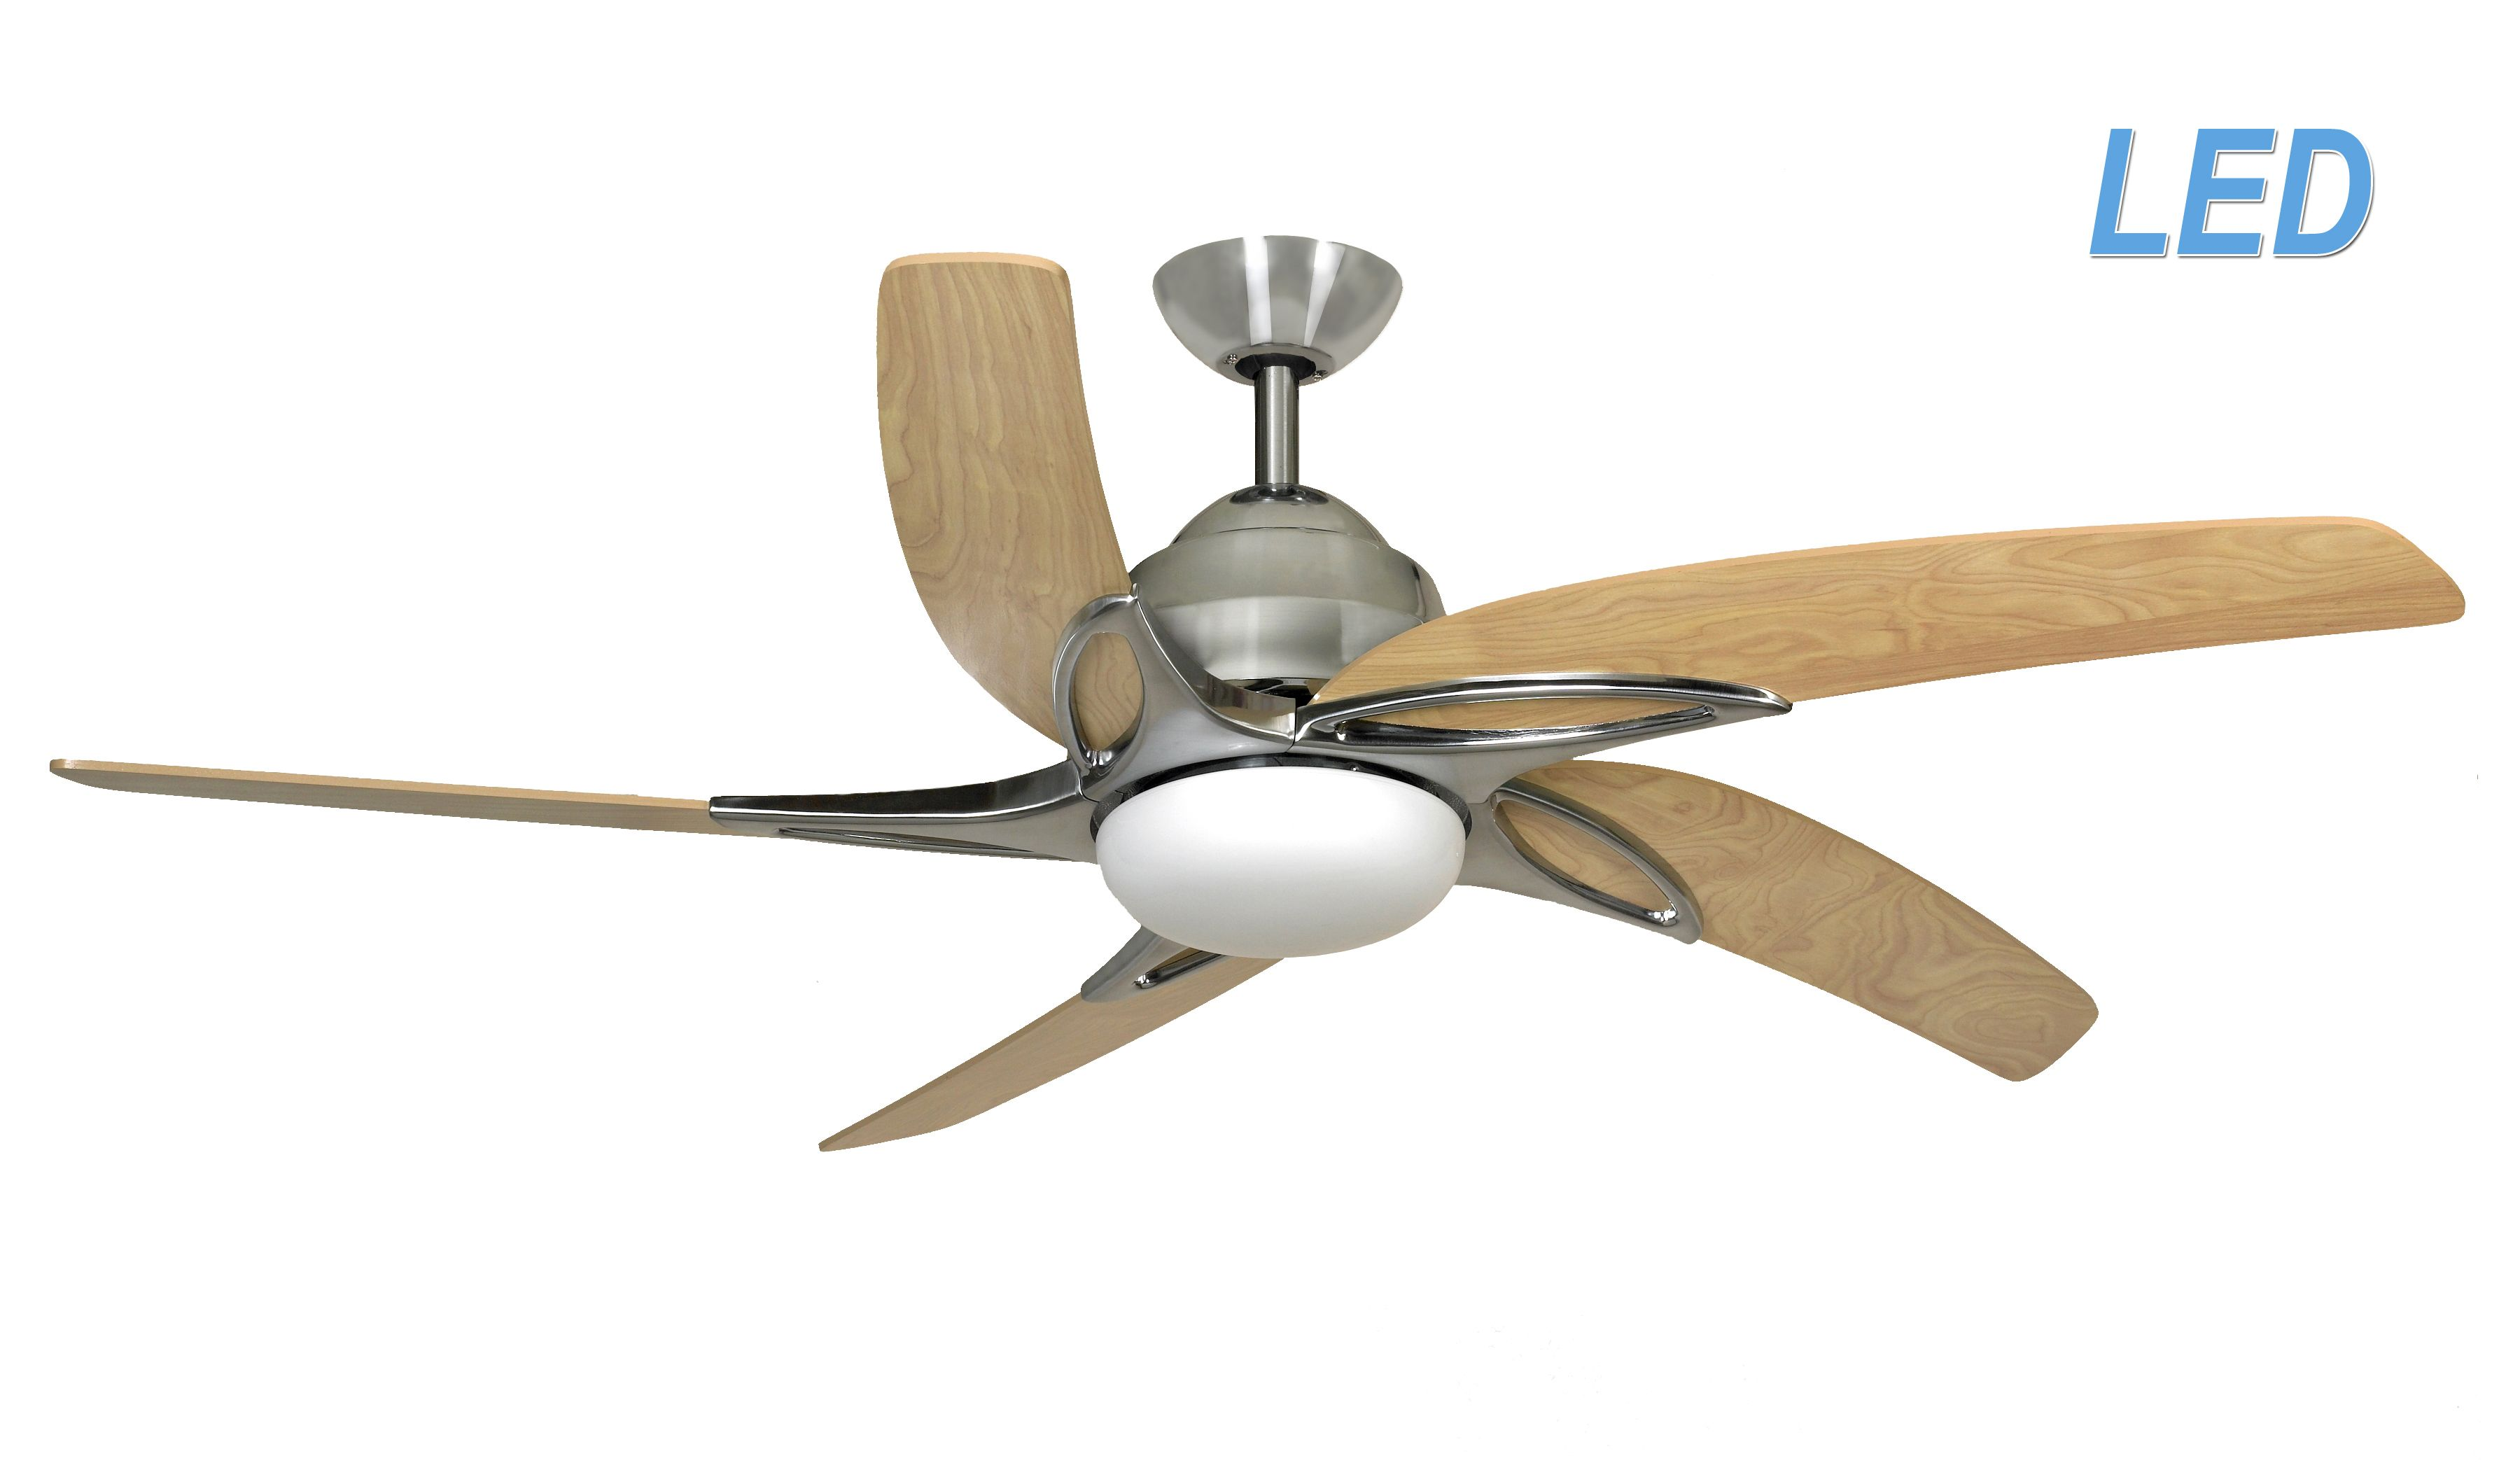 Fantasia Viper 44 Stainless Steel Ceiling Fan Remote Control Led Light 115625